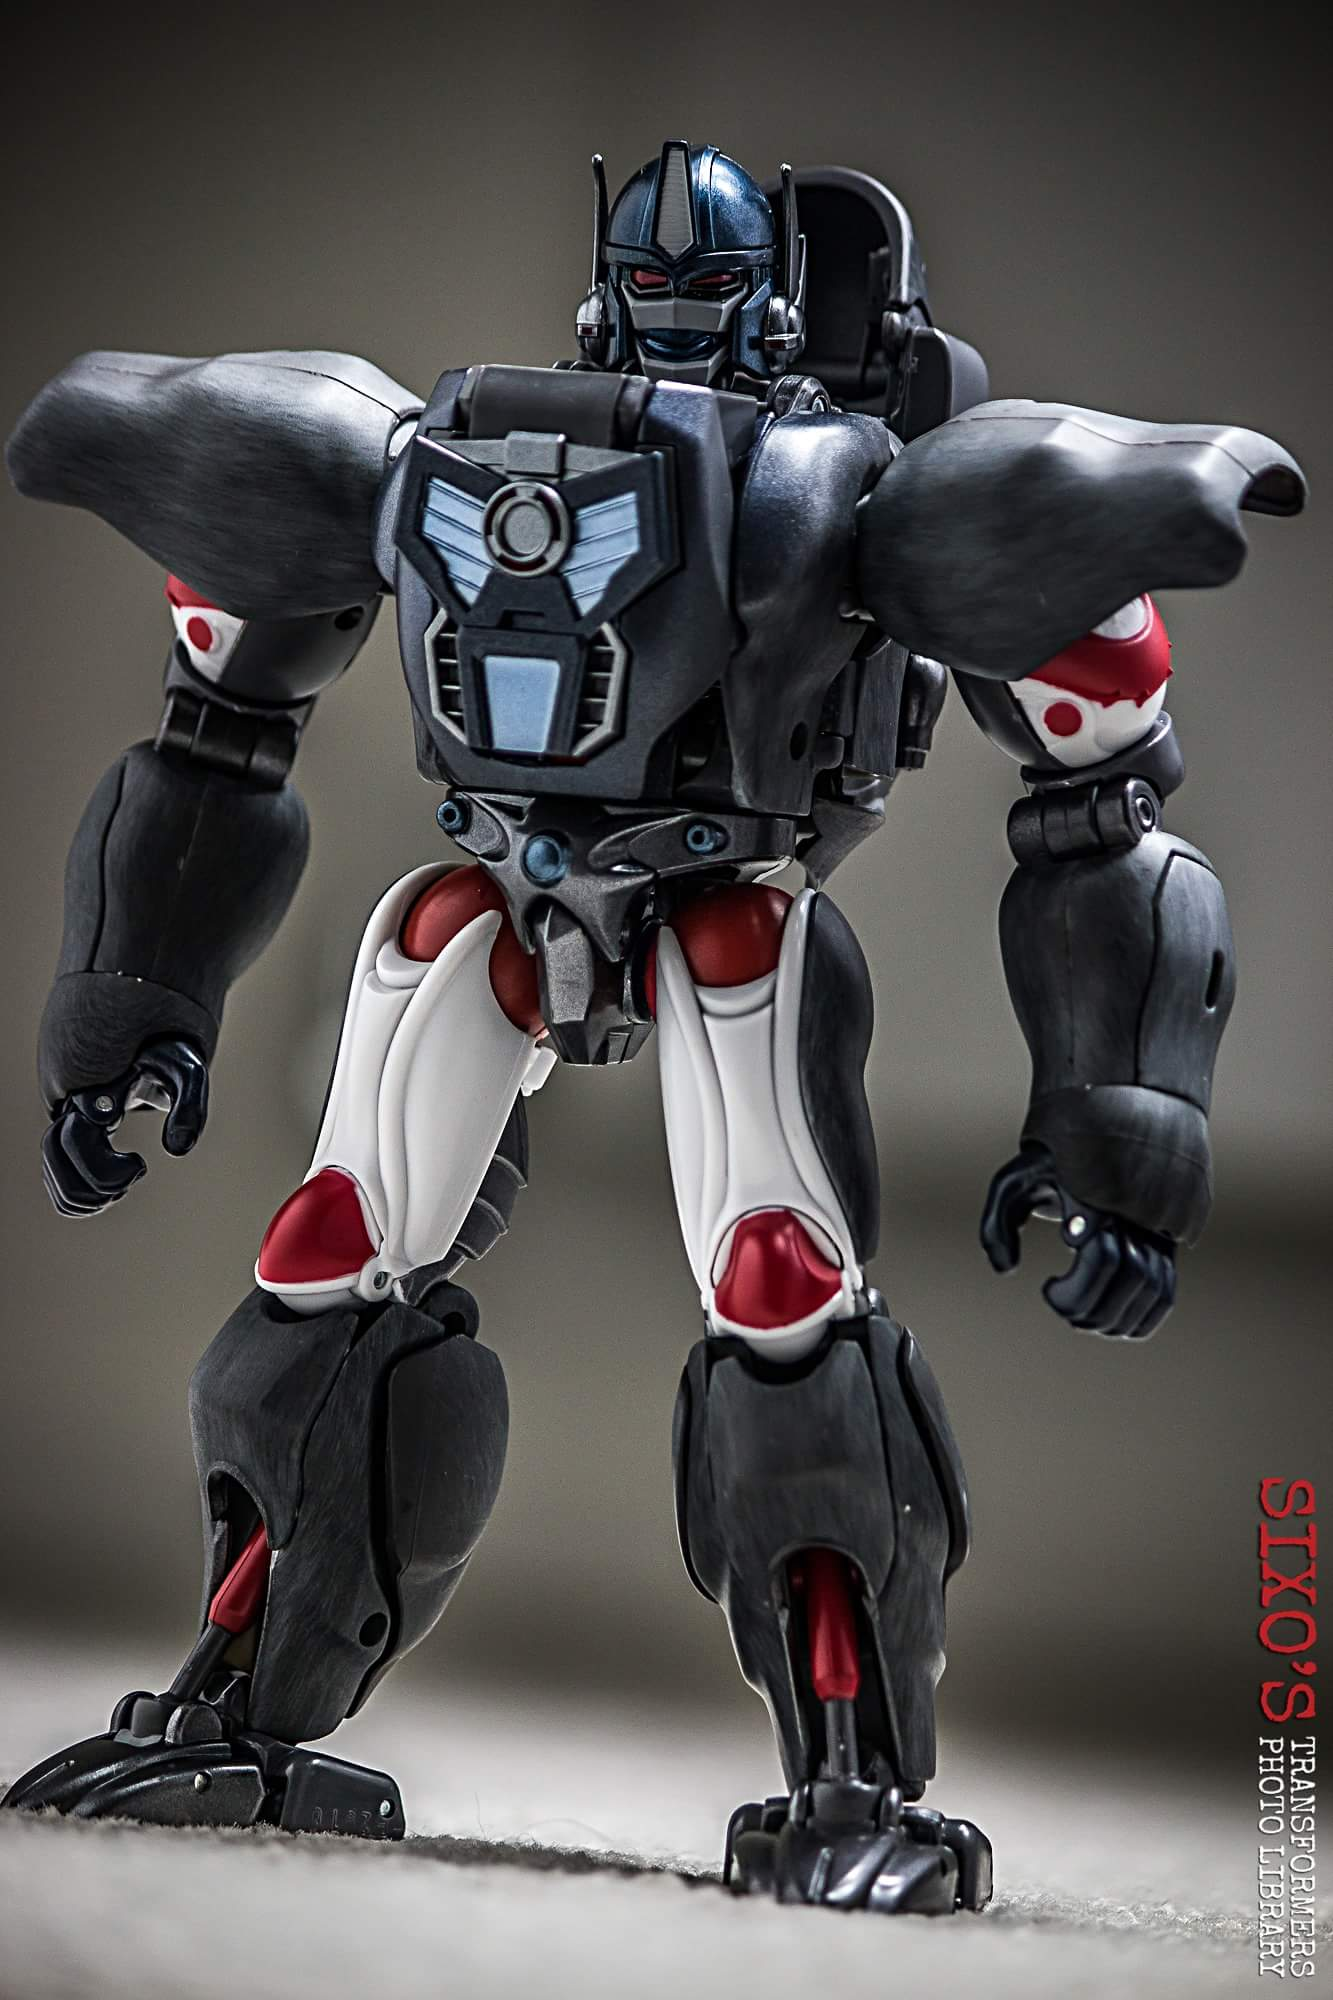 [Masterpiece] MP-32, MP-38 Optimus Primal et MP-38+ Burning Convoy (Beast Wars) - Page 3 ElzieDMR